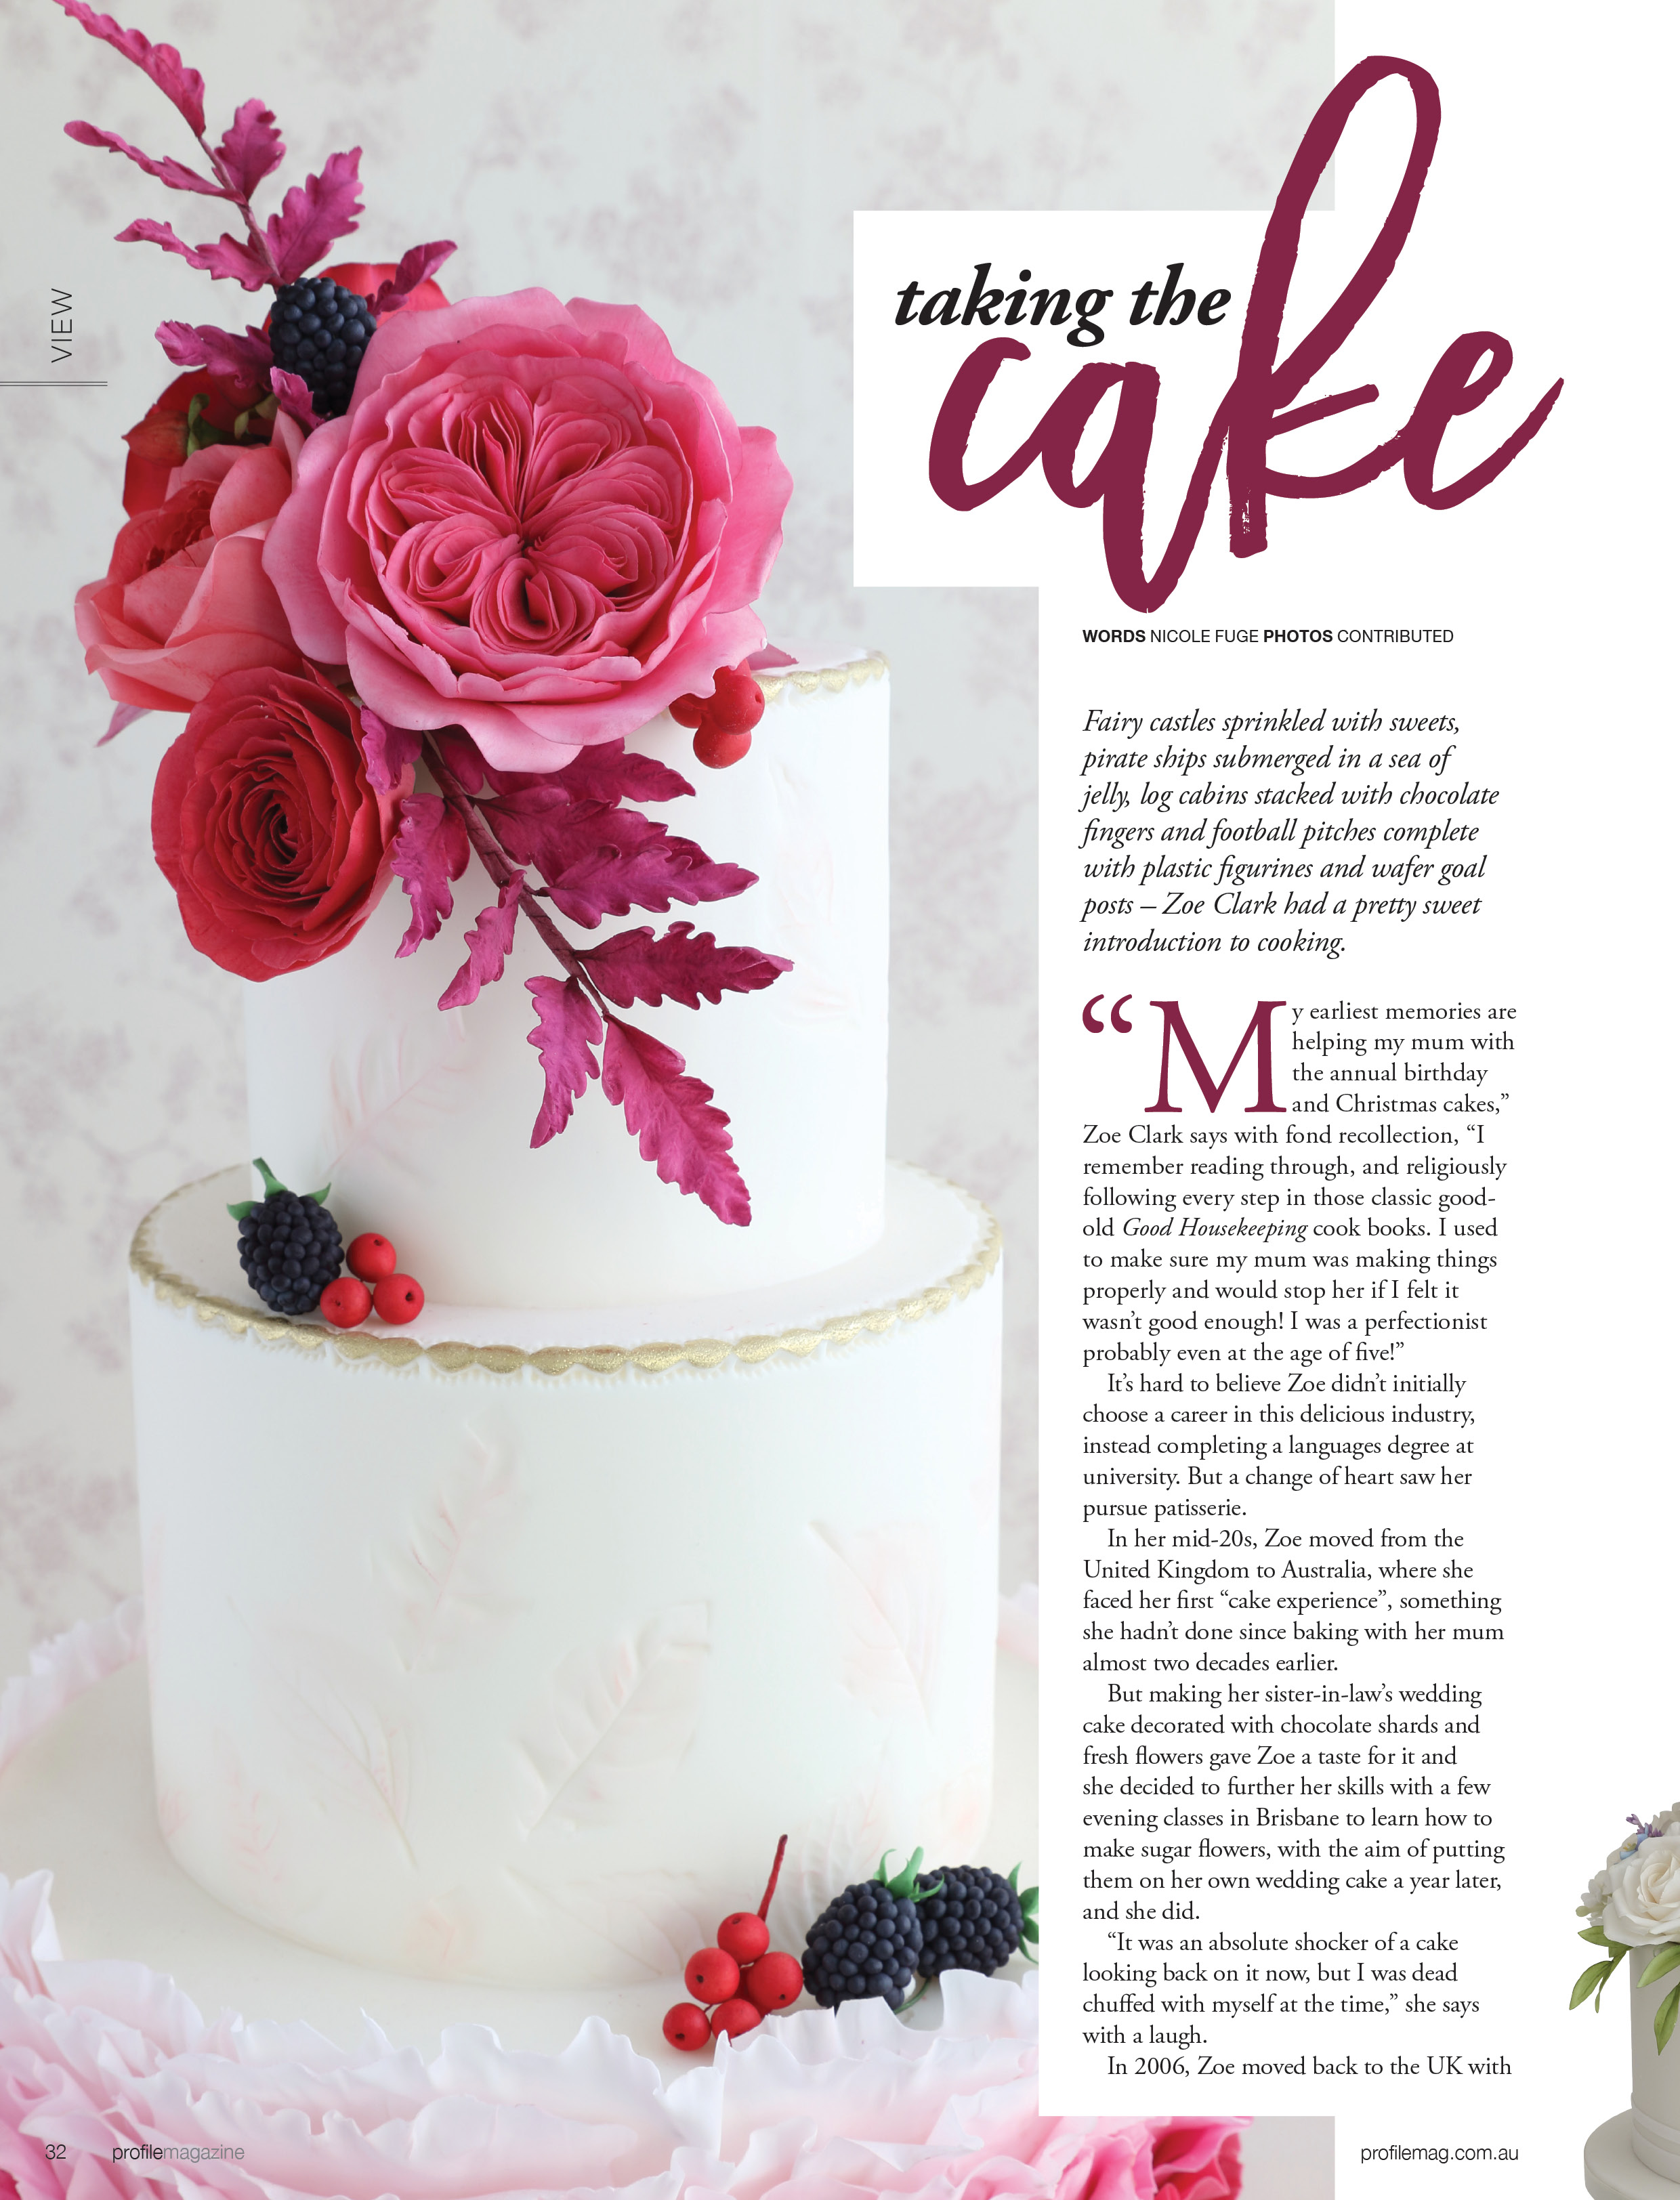 Zoe Clark Cakes Press, Cake Commissions and Features